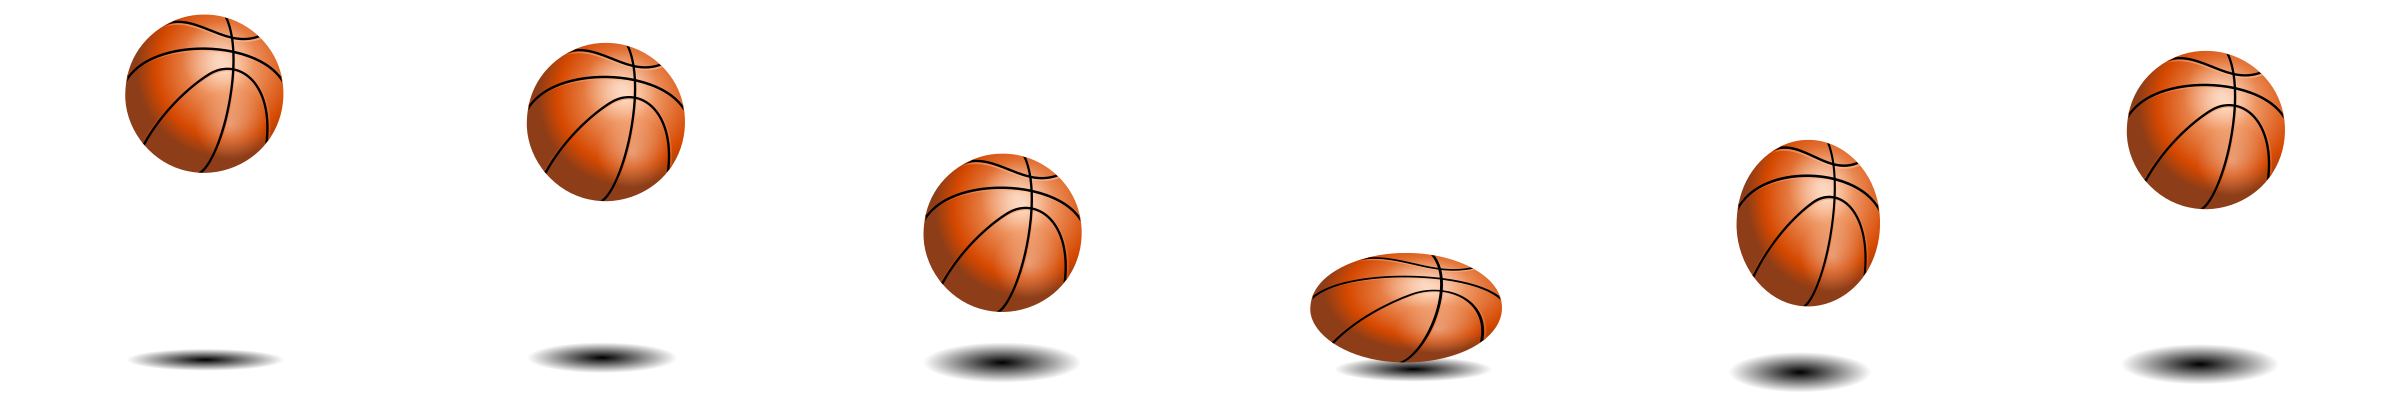 Basketball-css-spritesheet by yamachem